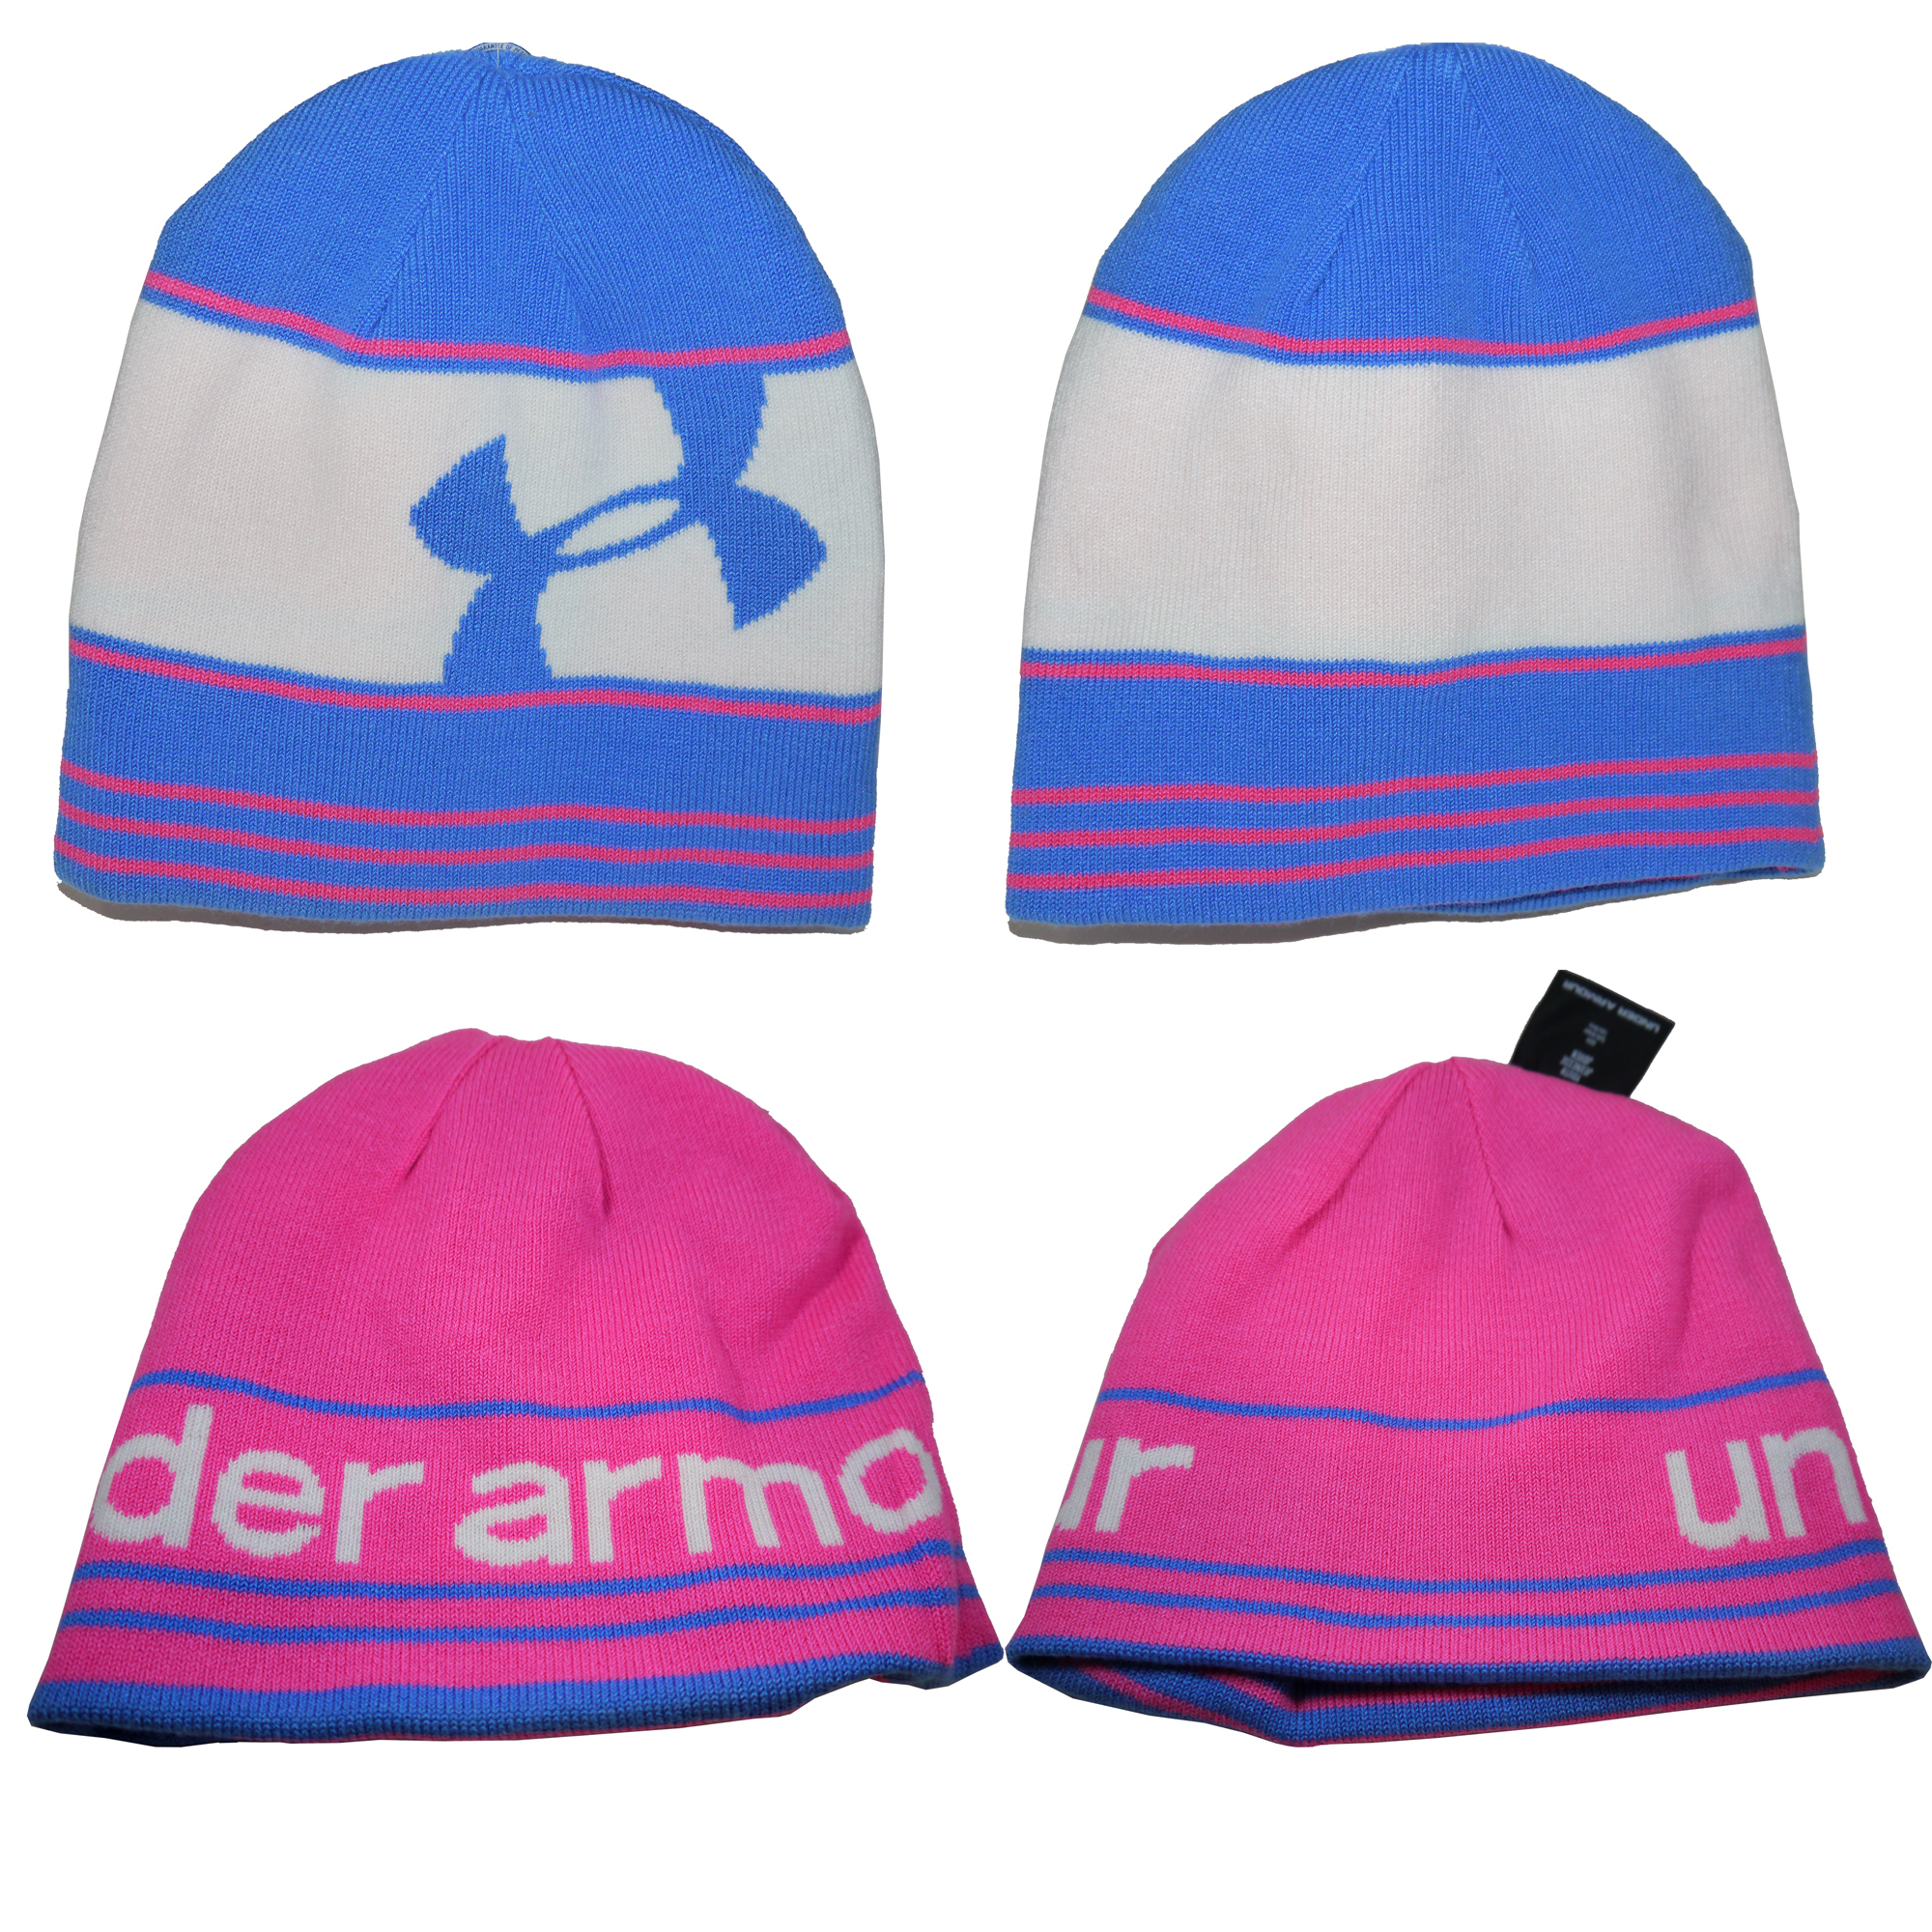 Under Armour Girl's Switch It Up II Blue/White/Pink Reversible Beanie Hat 14006